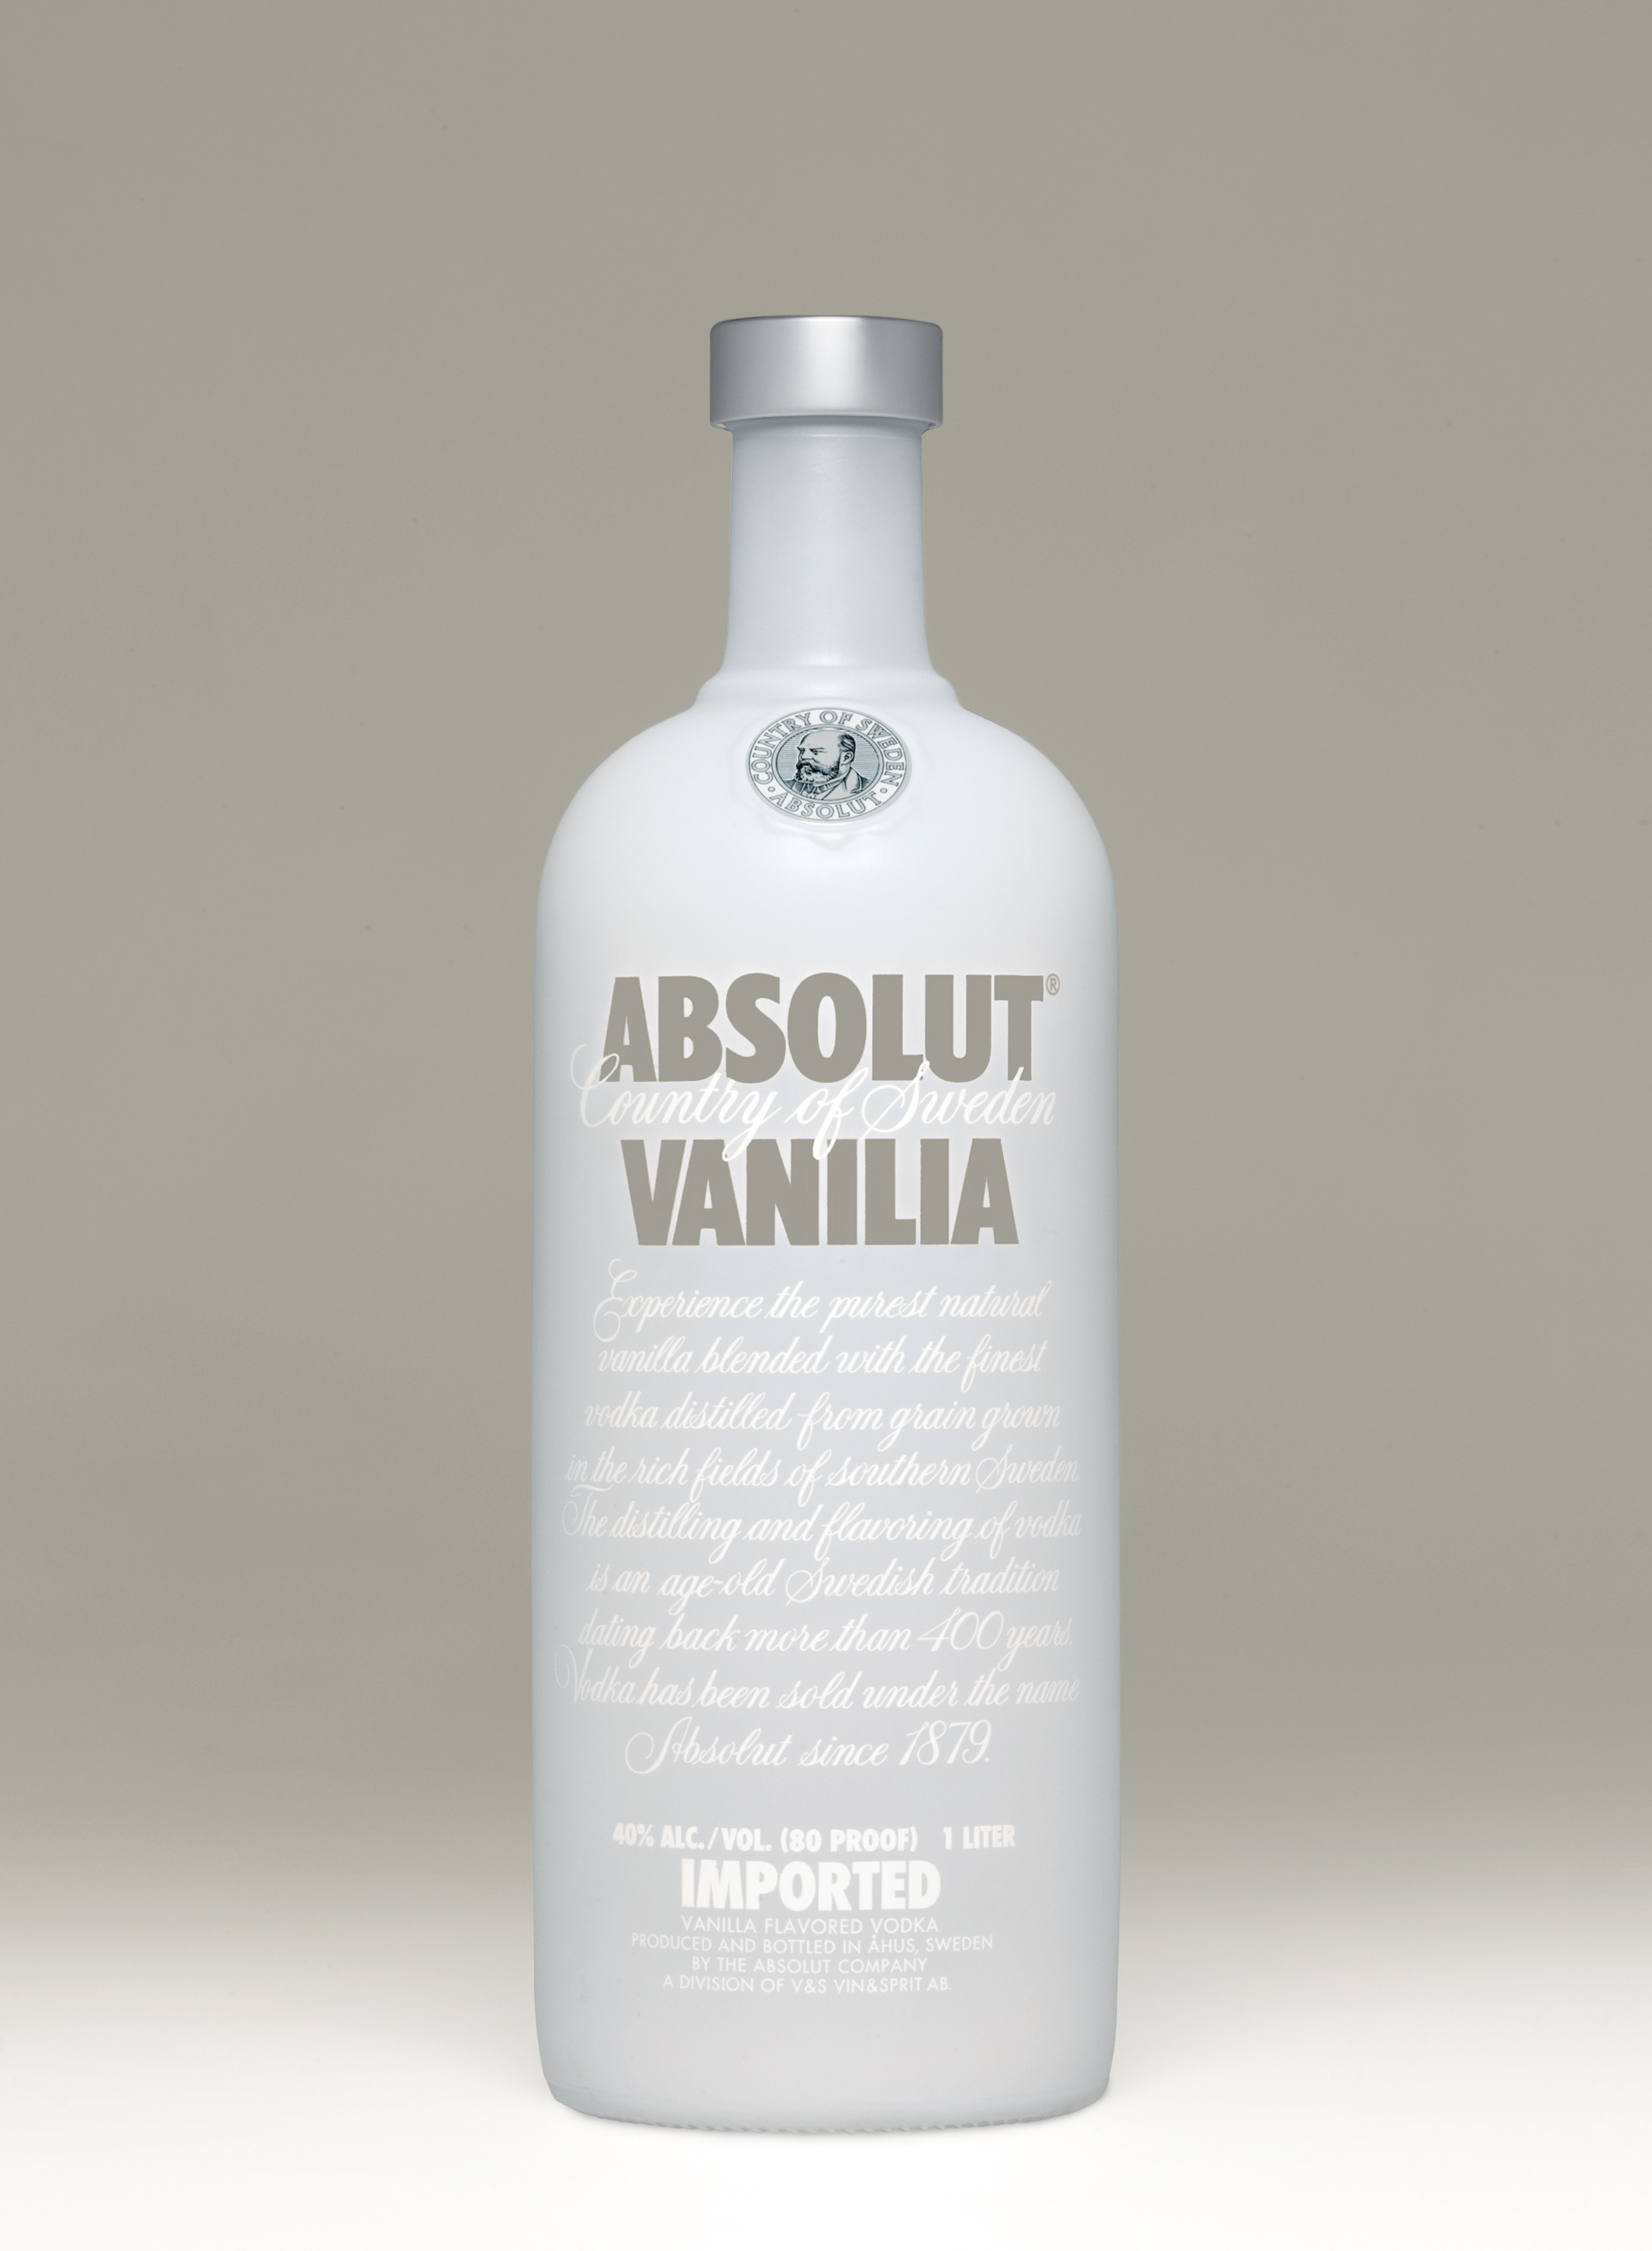 Coleccion completa de vodka Absolut 1 parte